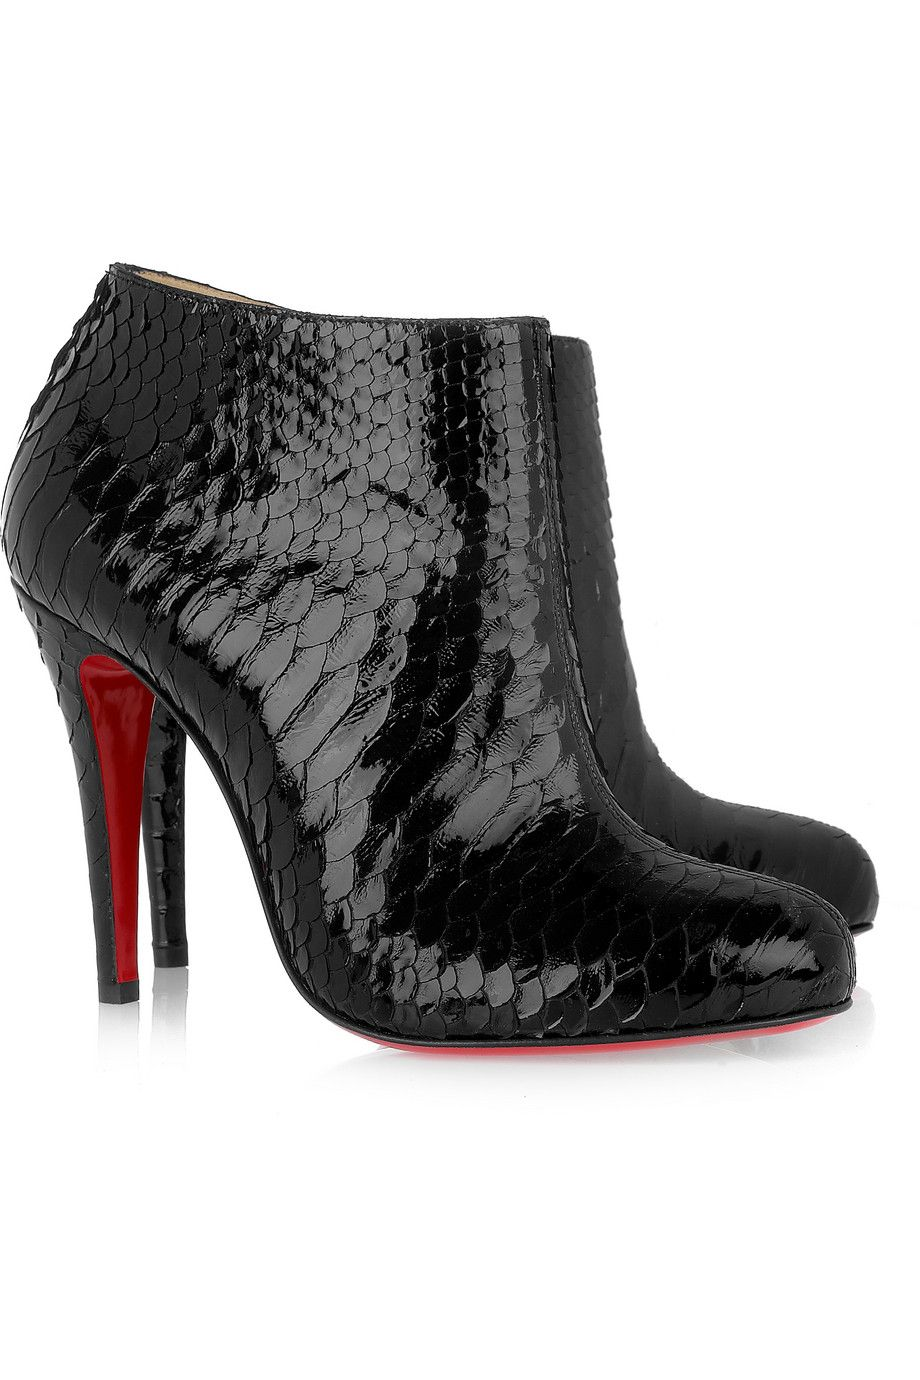 ff1091ffde1 Christian Louboutin. CHRISTIAN LOUBOUTIN Belle 100 glossed-python ankle  boots ...